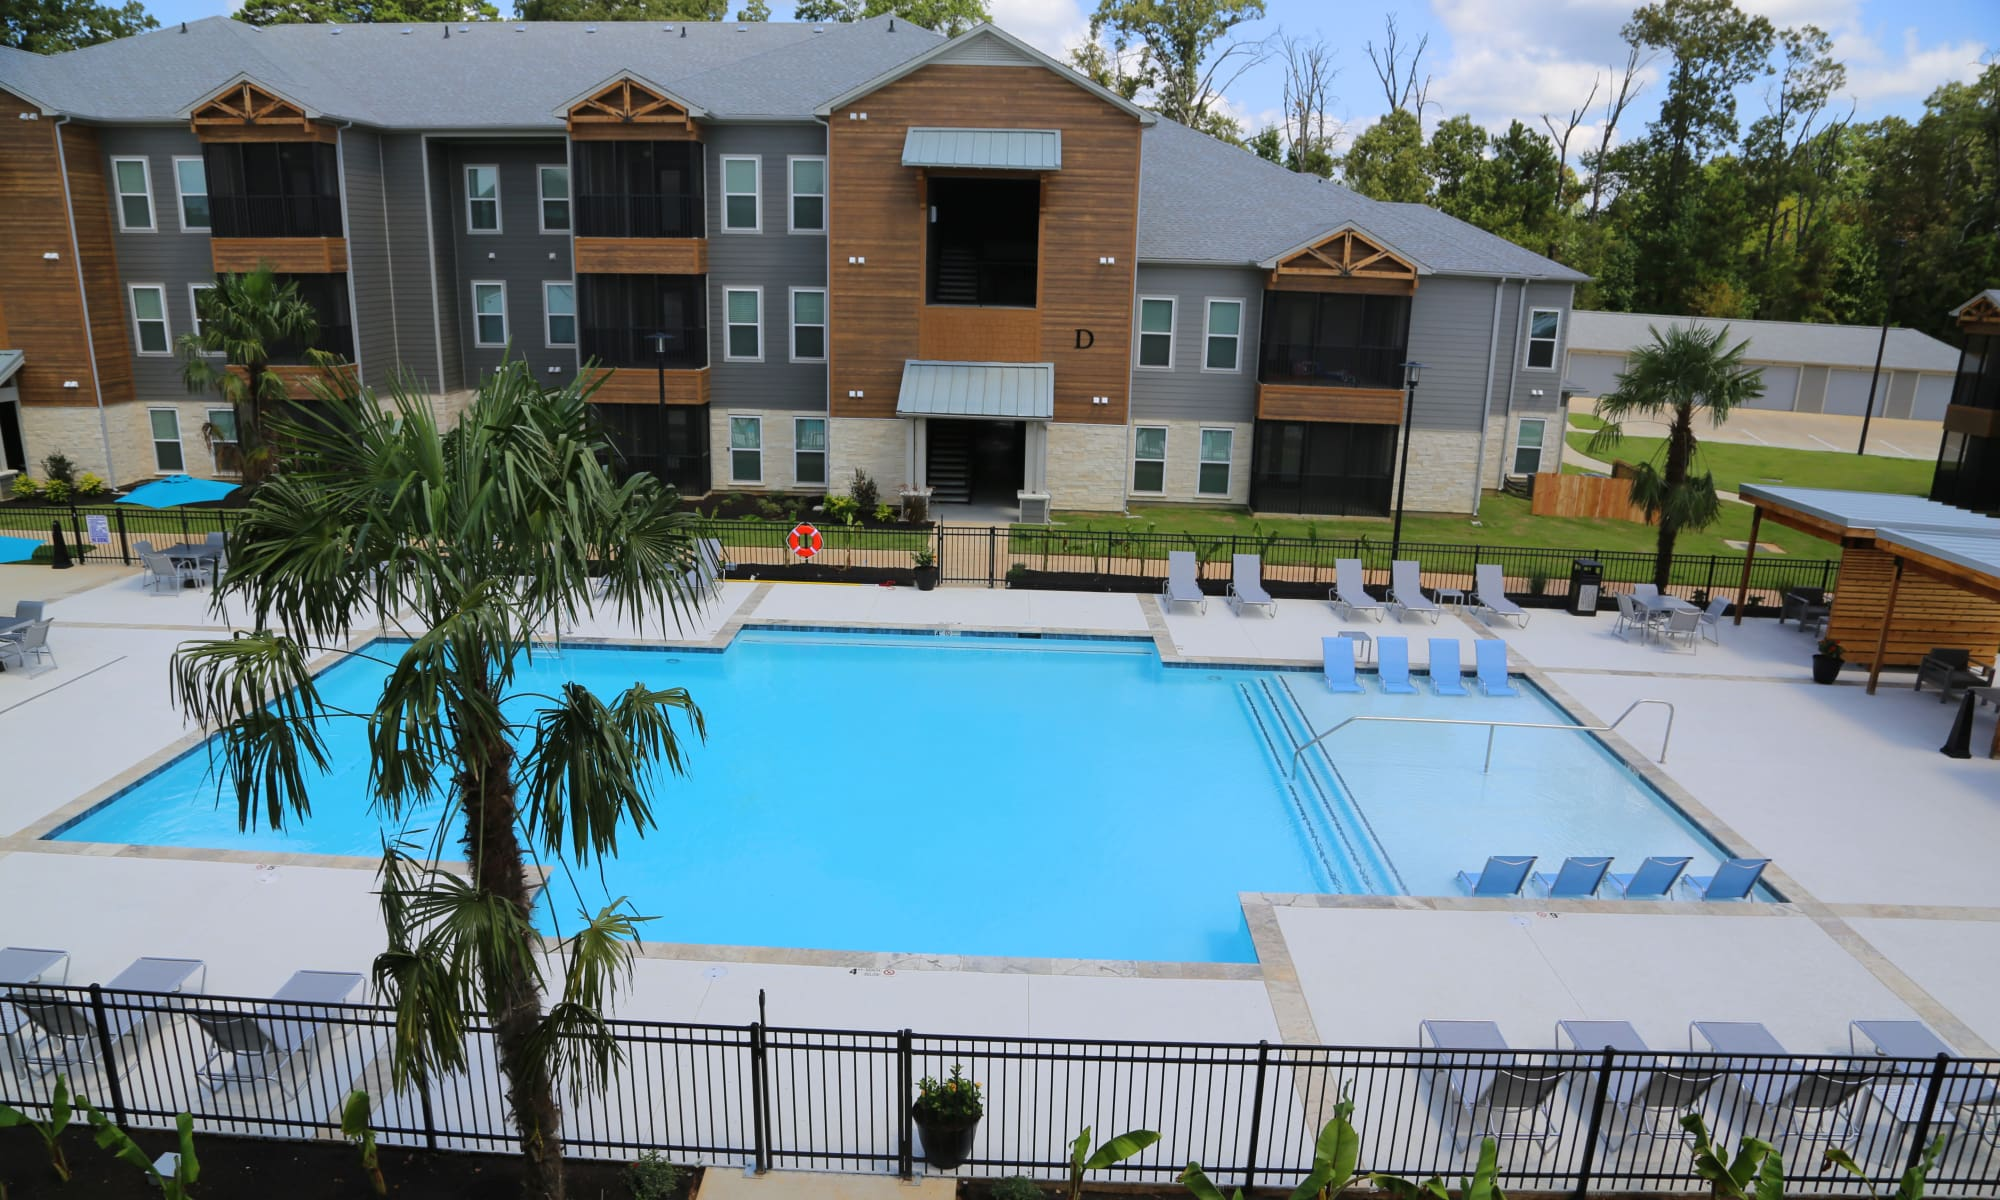 Apartments in Ruston, LA